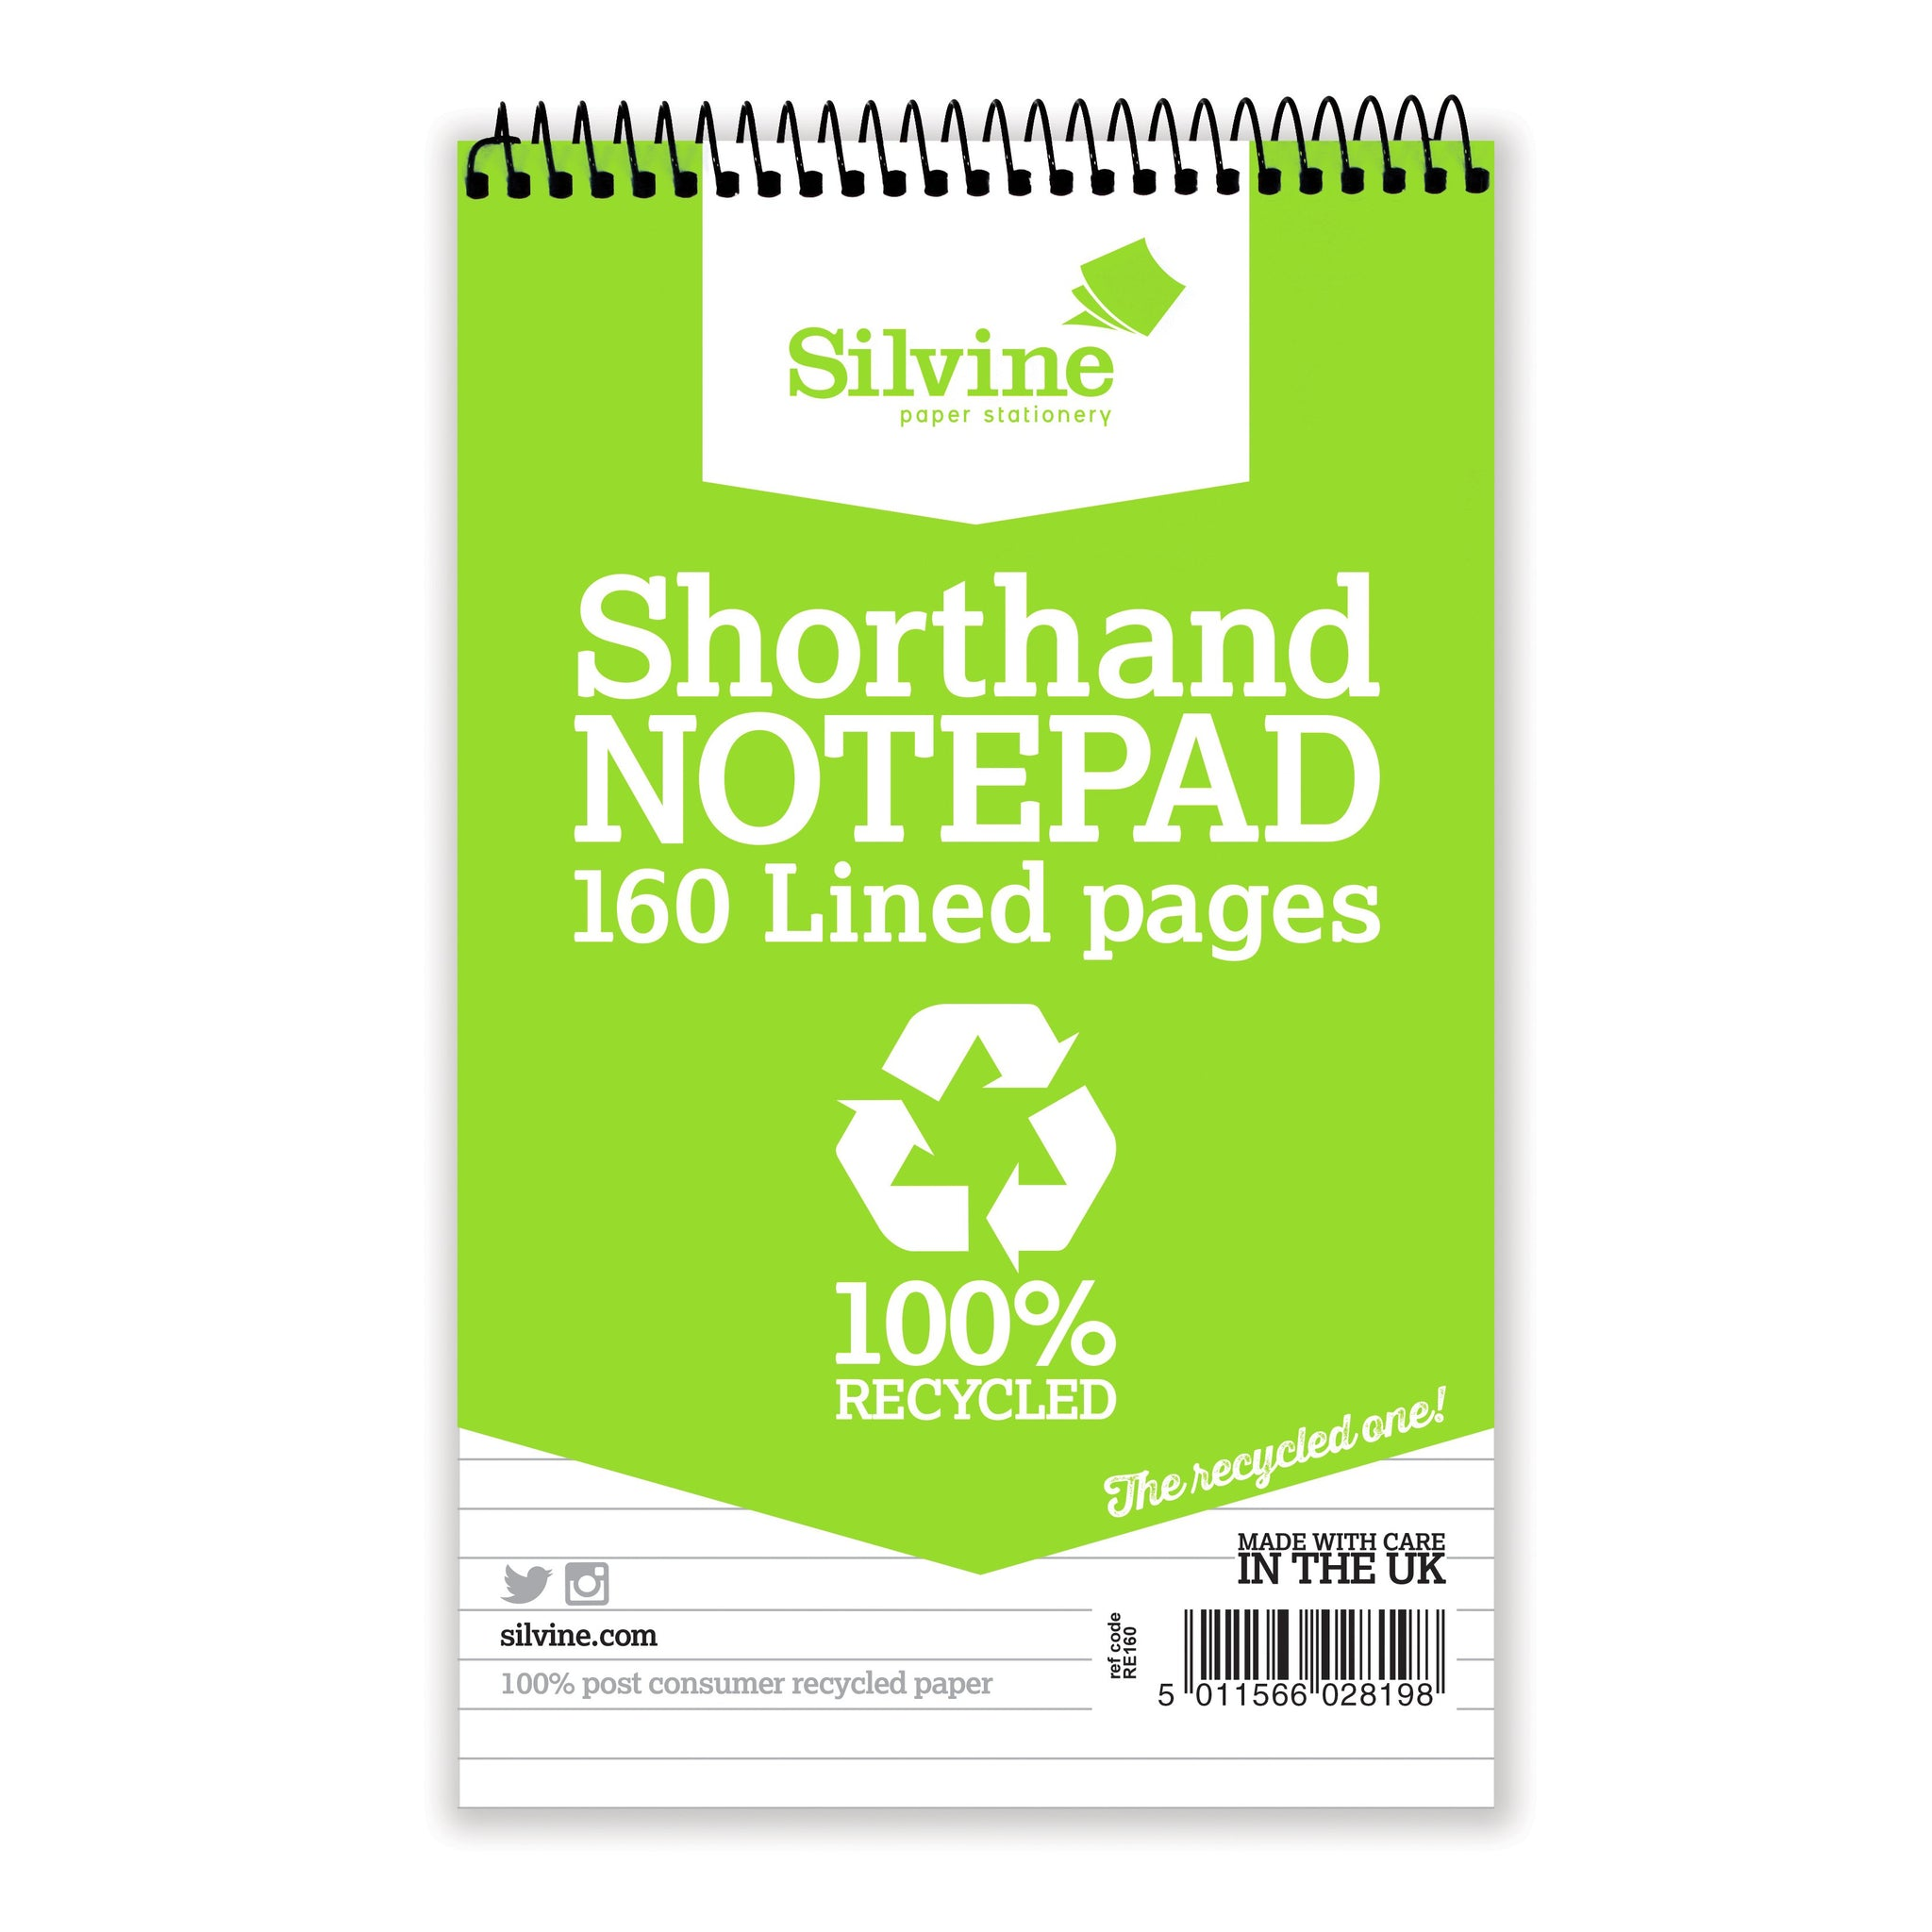 Silvine Shorthand Notebooks 160 Lined Pages 100% Recycled